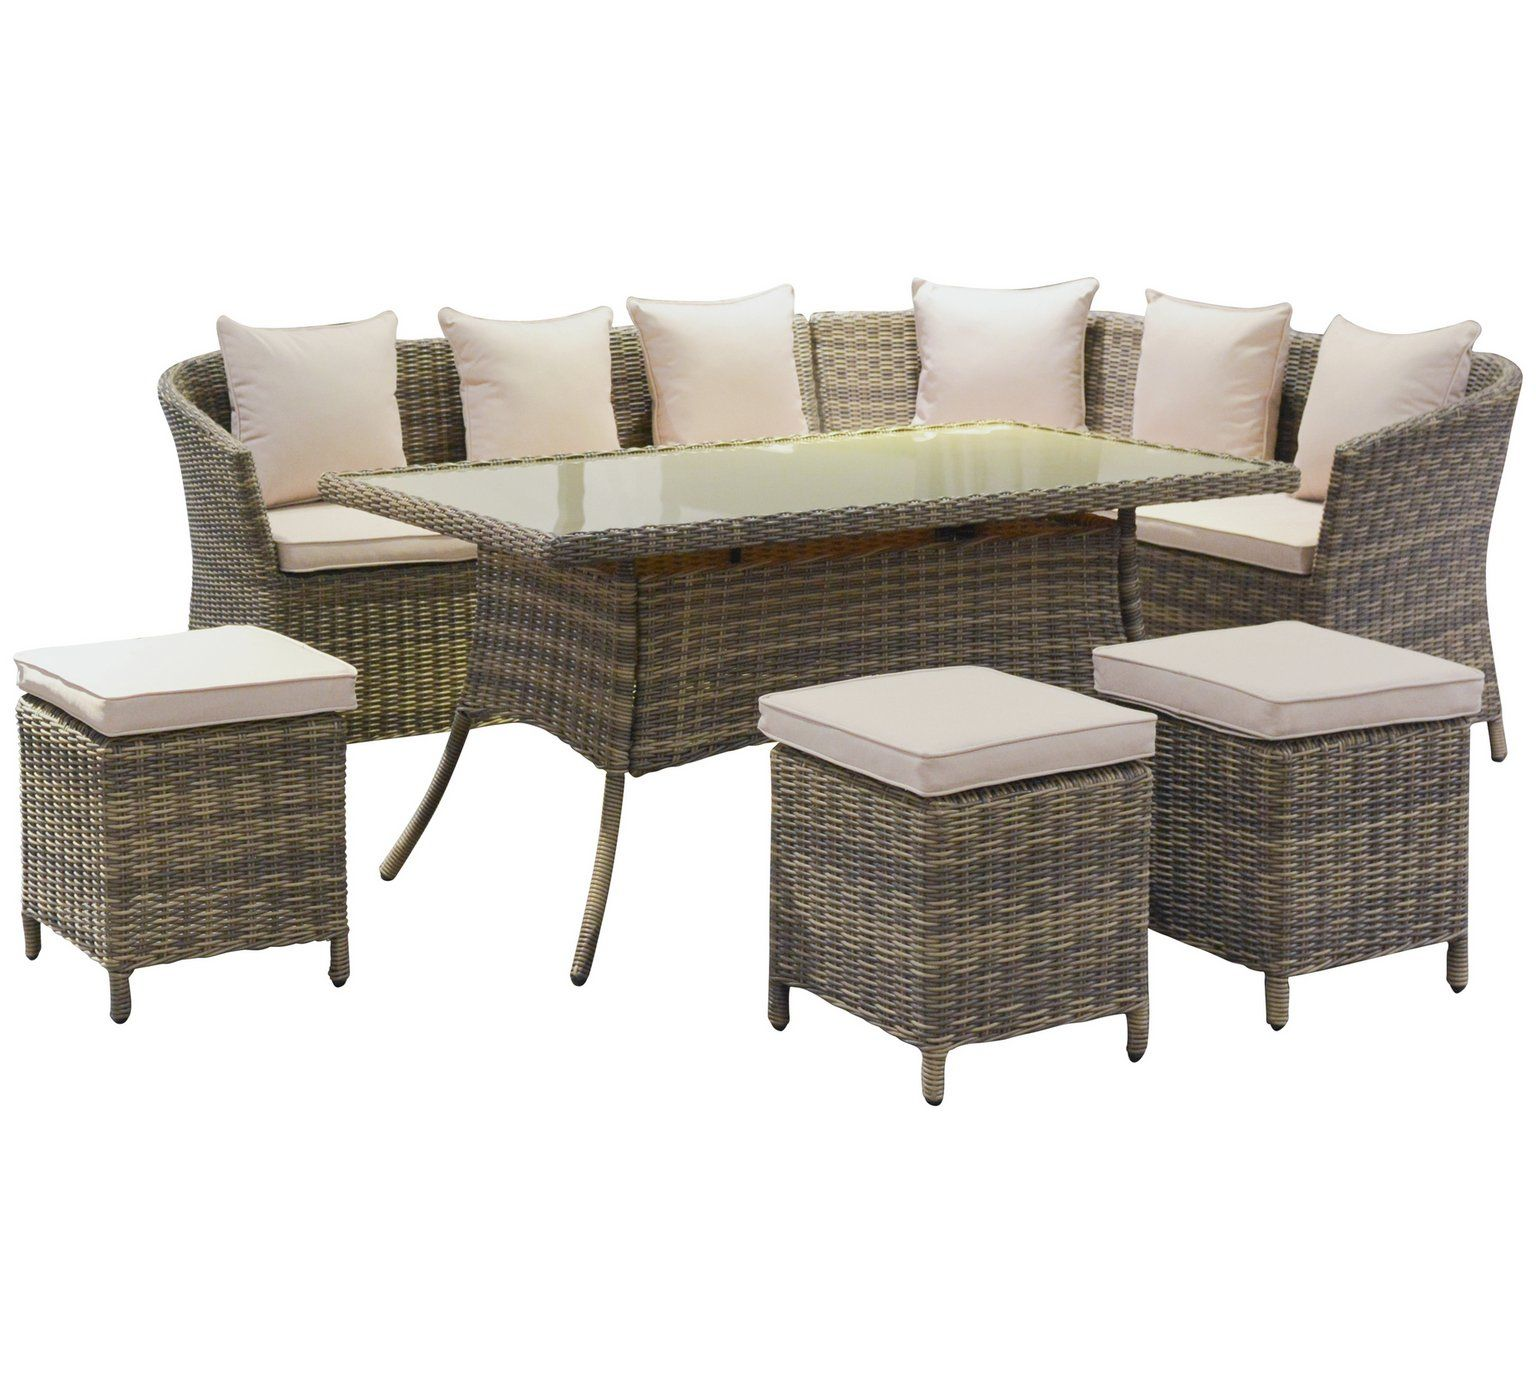 Buy Rattan Effect 8 Seater Corner Sofa Dining Table And Stools At Argos Co Uk Visit Argos Co Uk To Outdoor Furniture Sets Garden Table And Chairs Corner Sofa